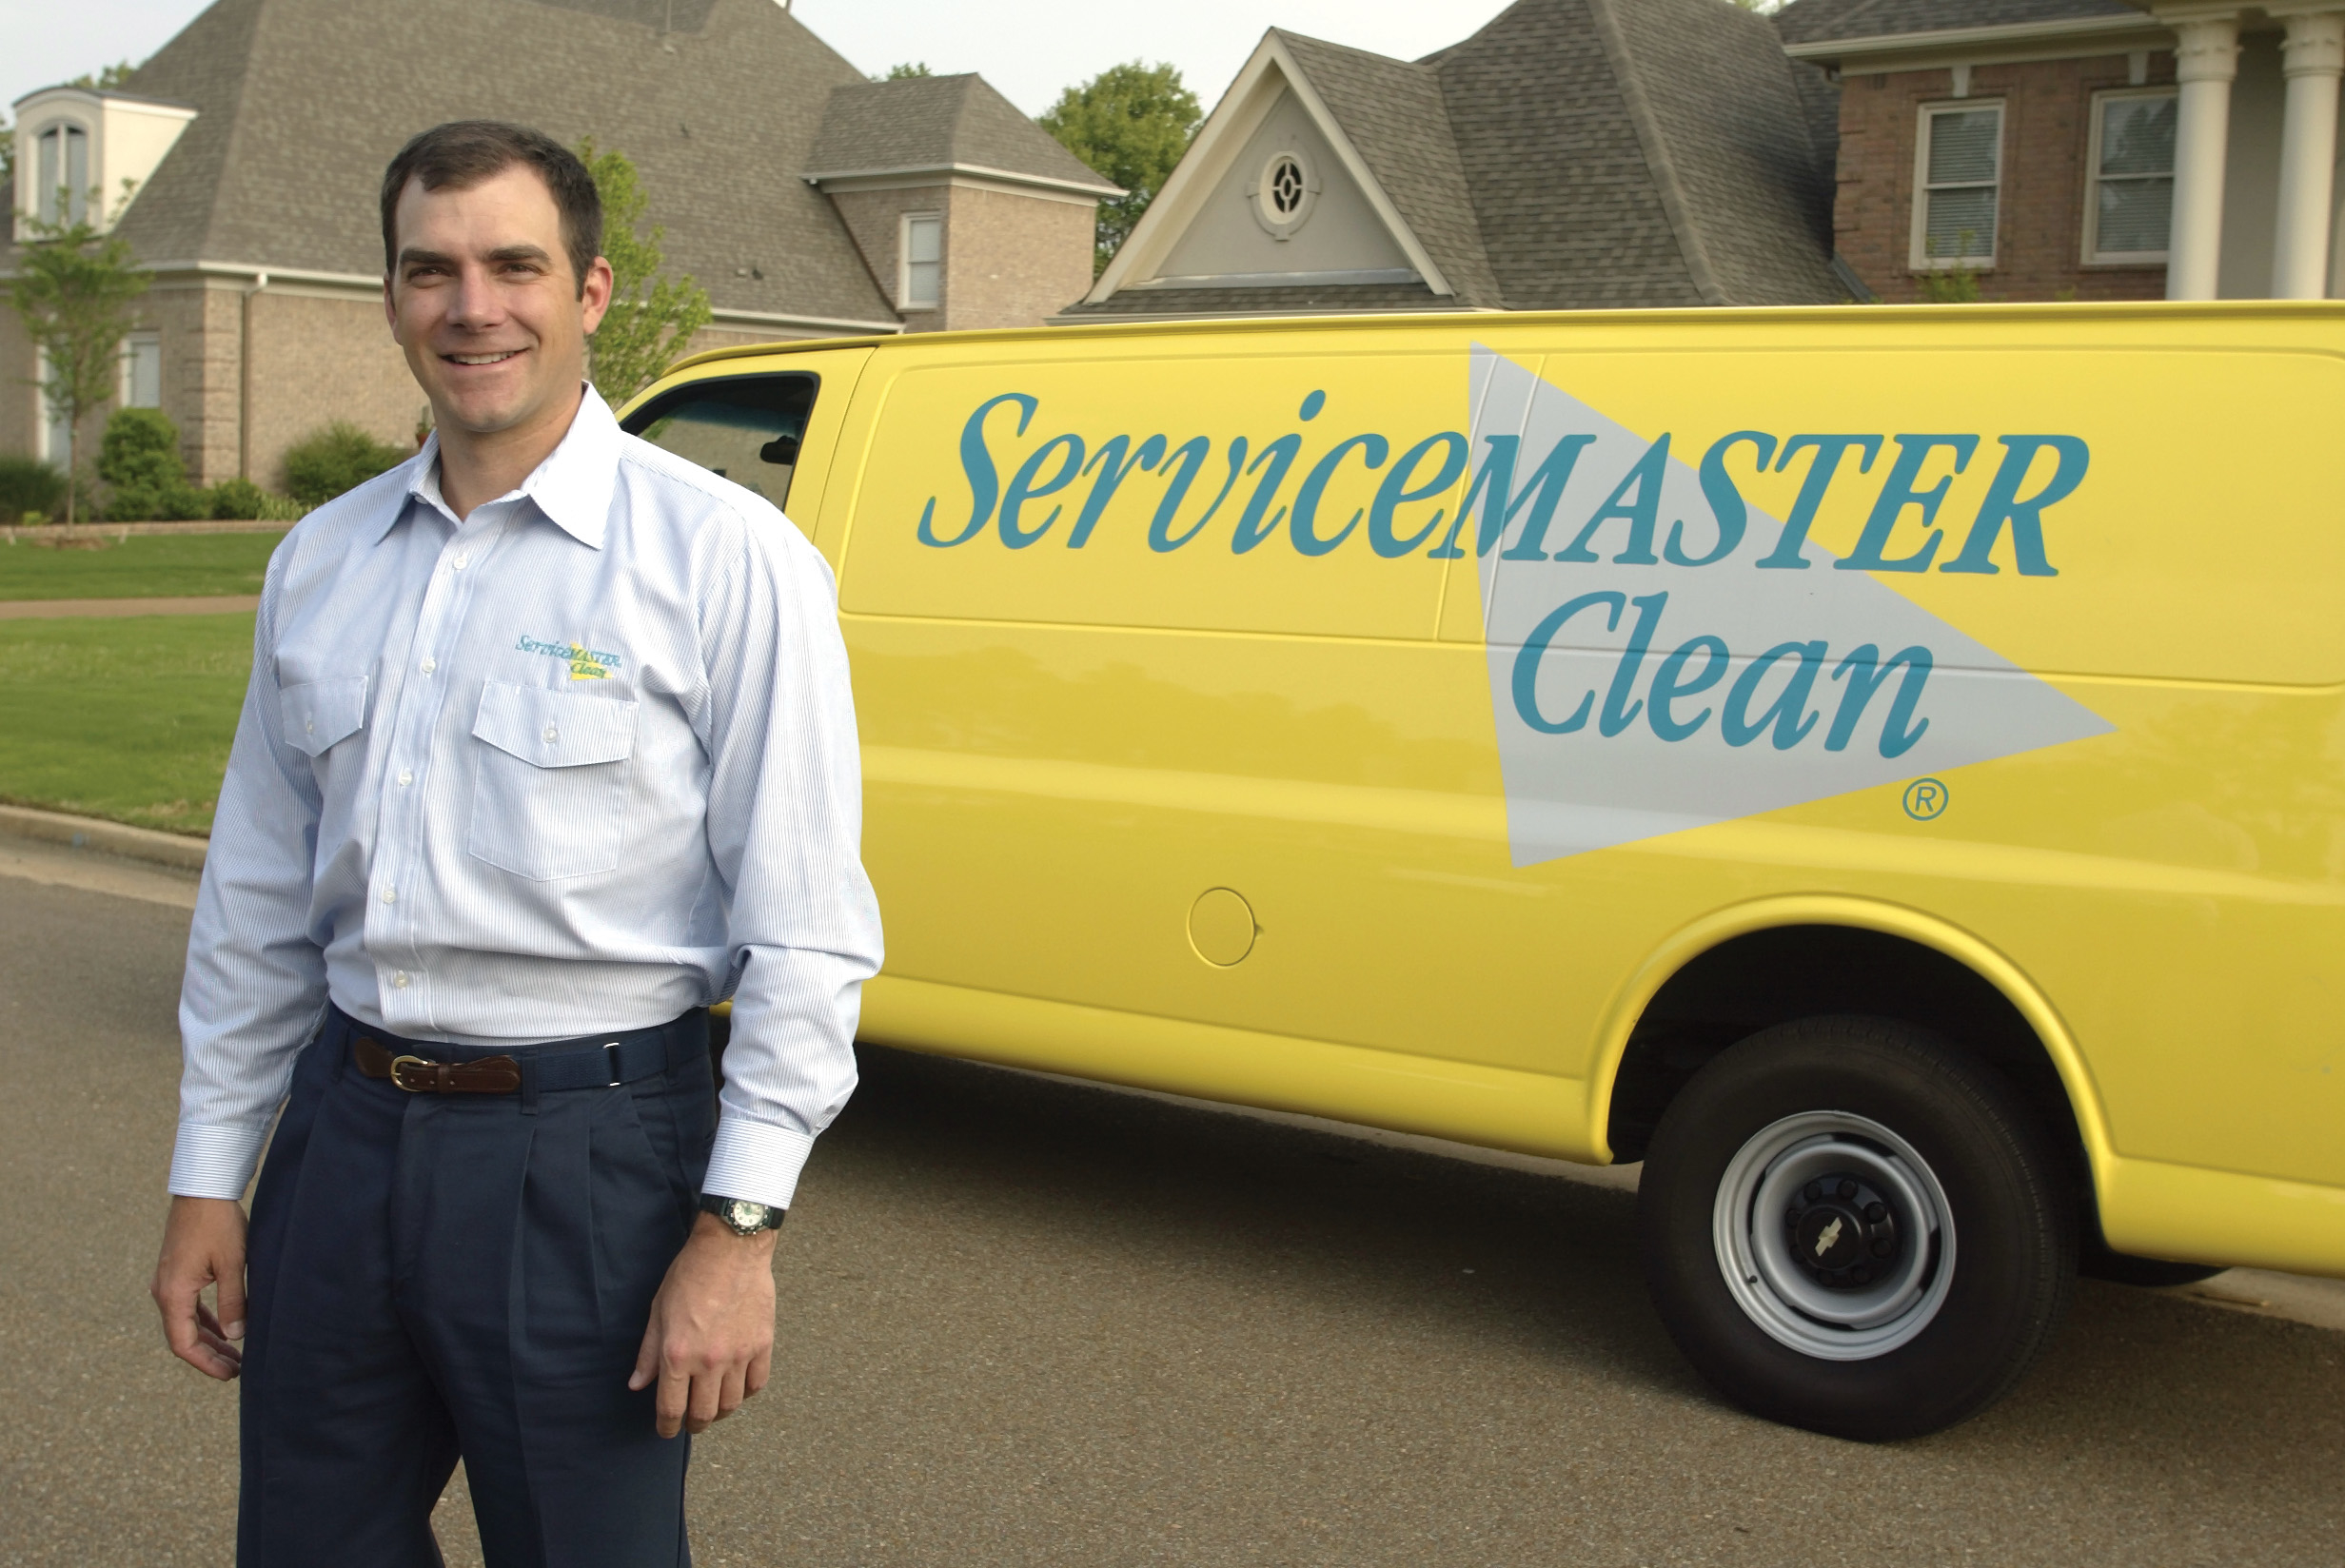 Servicemaster Of The Upstate In Spartanburg, Sc  (864. Bookkeeping Certification Nyc. Wallingford Tire And Auto Baba Murad Shah Ji. Medigap Insurance Policy Best Home Renovation. Astoria Community College Tv Ofertas Colombia. Atlanta Georgia Colleges And Universities List. Air Conditioner Repair Near Me. Hair Schools In Virginia Impulsivity And Adhd. Bilingual Answering Services